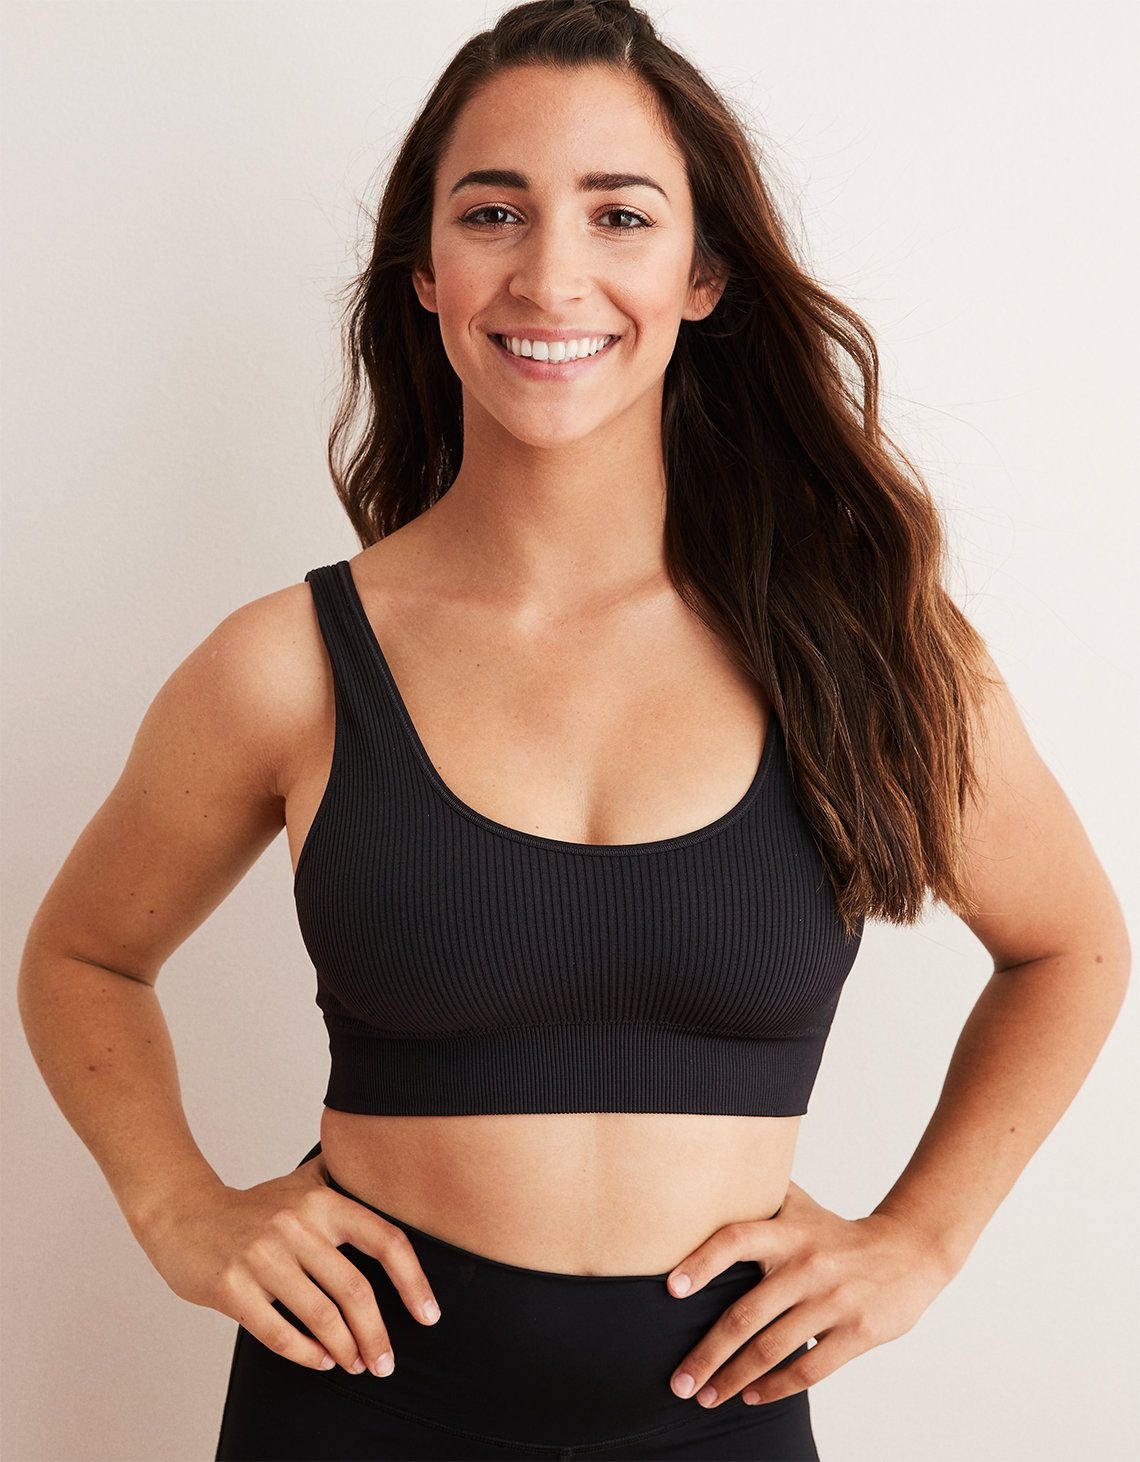 a9a9c4640a1 Aerie Chill Seamless Sports Bra by American Eagle Outfitters. Product Image